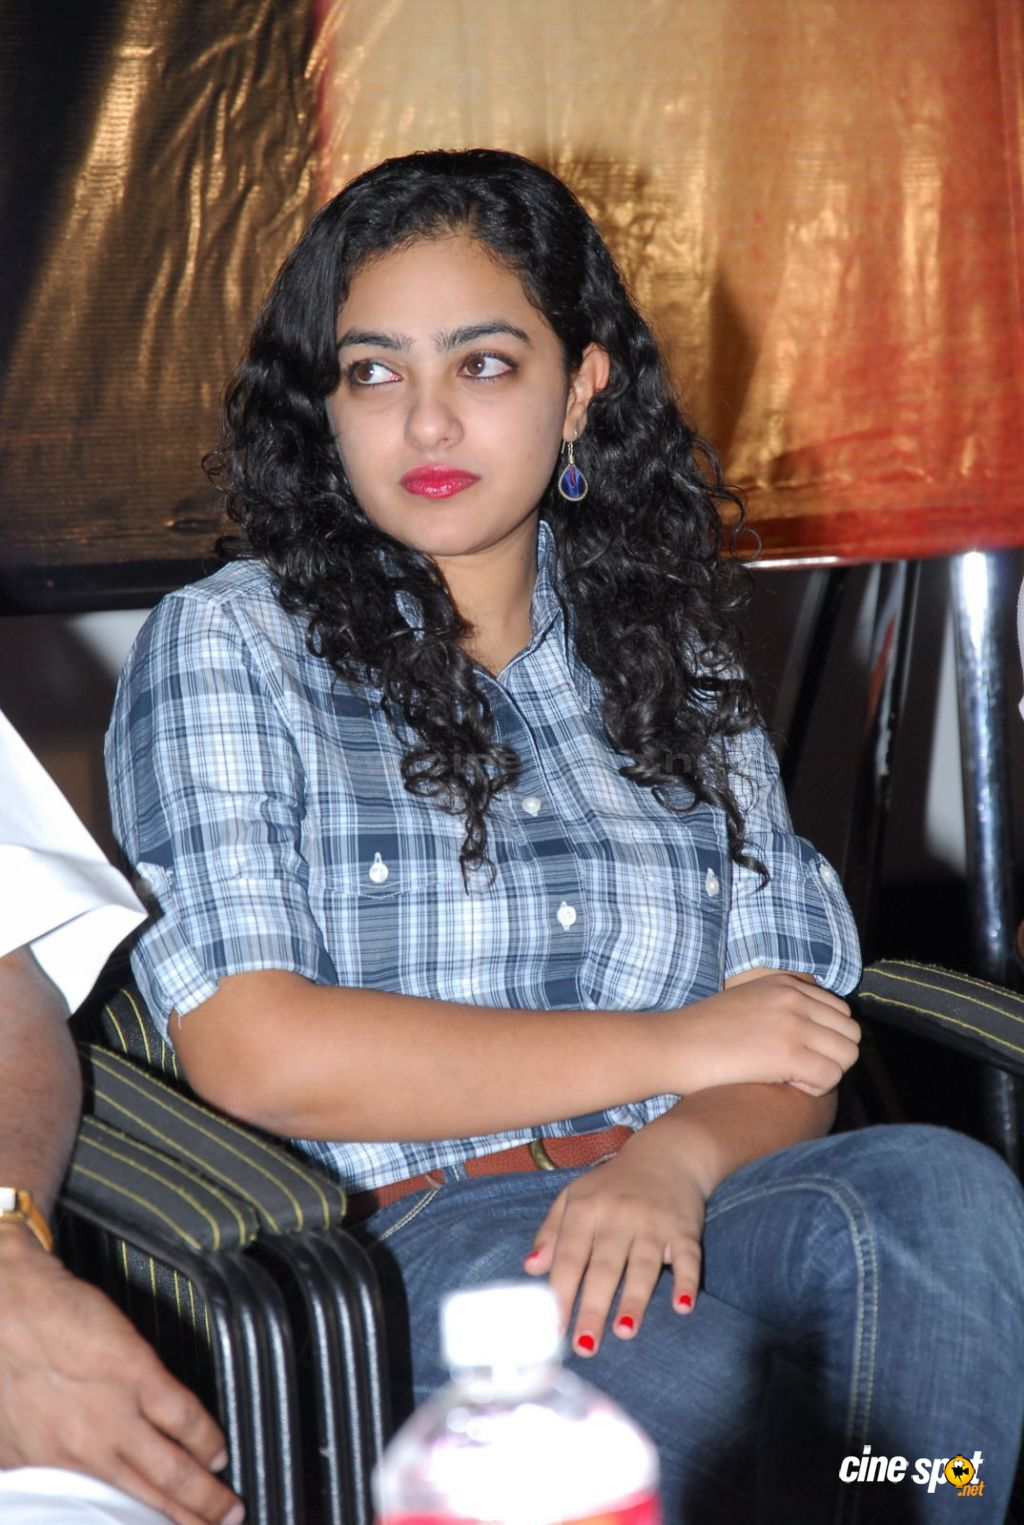 Nithya Menen photos (5): www.cinespot.net/gallery/v/South+Cinema/Actress/Nithya+Menon+south...